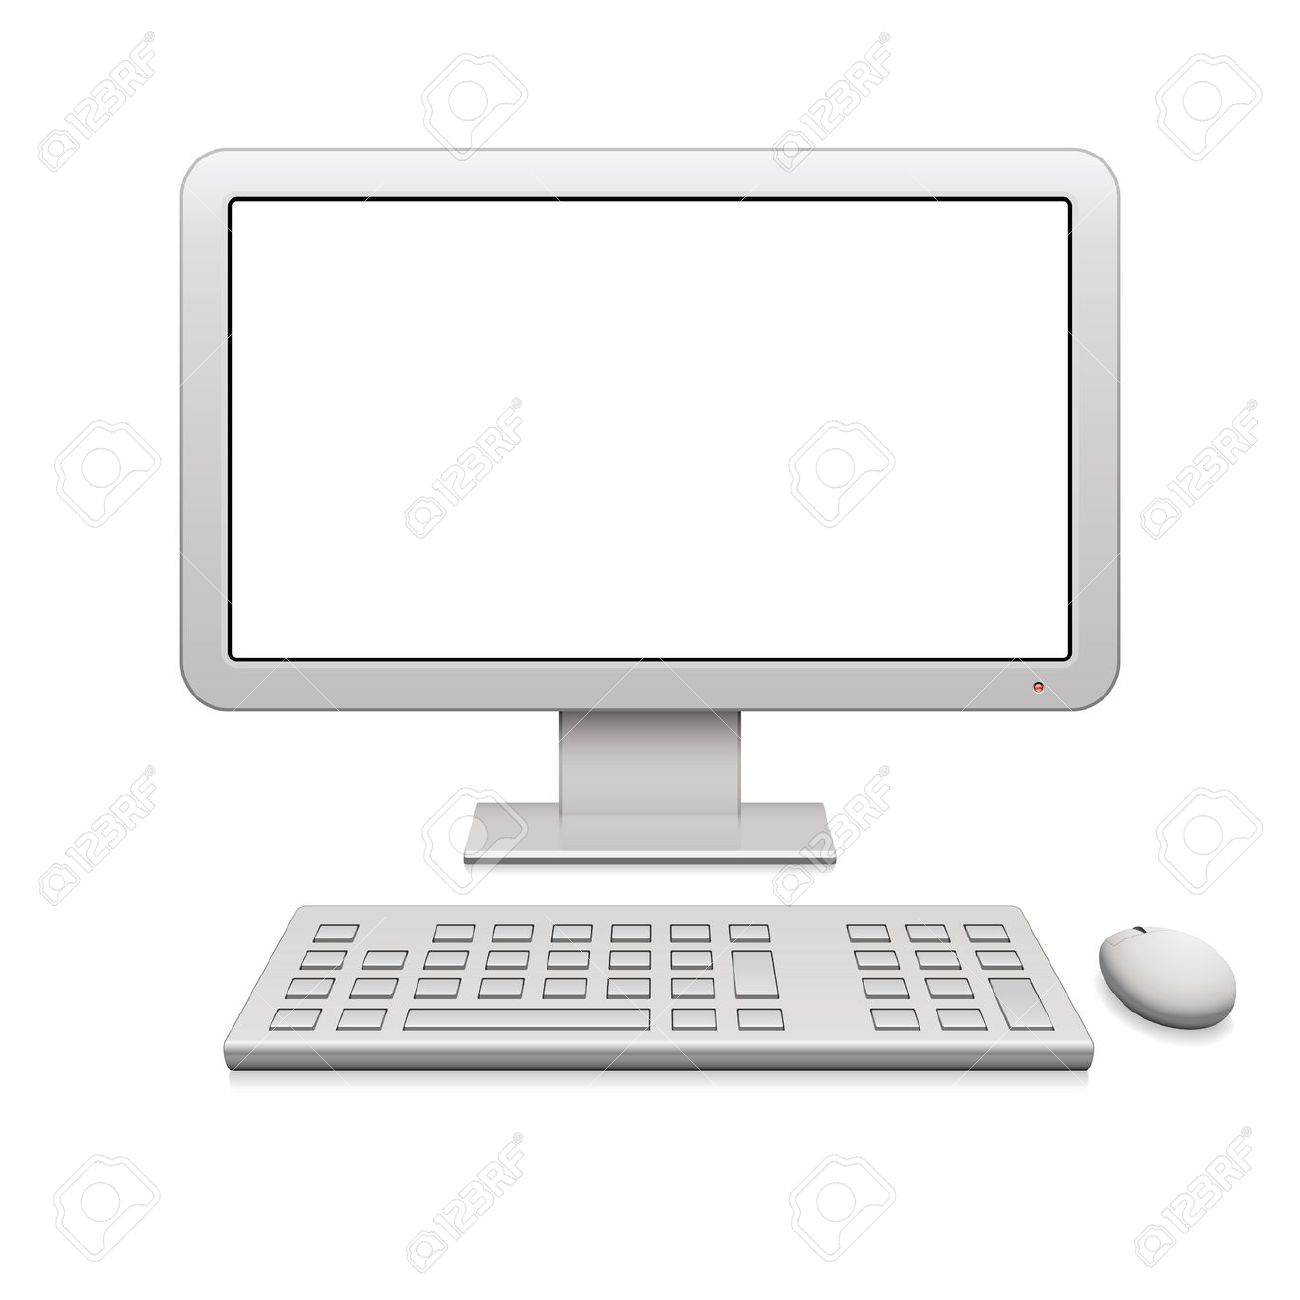 Computer monitor and keyboard clipart image royalty free stock 19,909 White Mice Cliparts, Stock Vector And Royalty Free White ... image royalty free stock